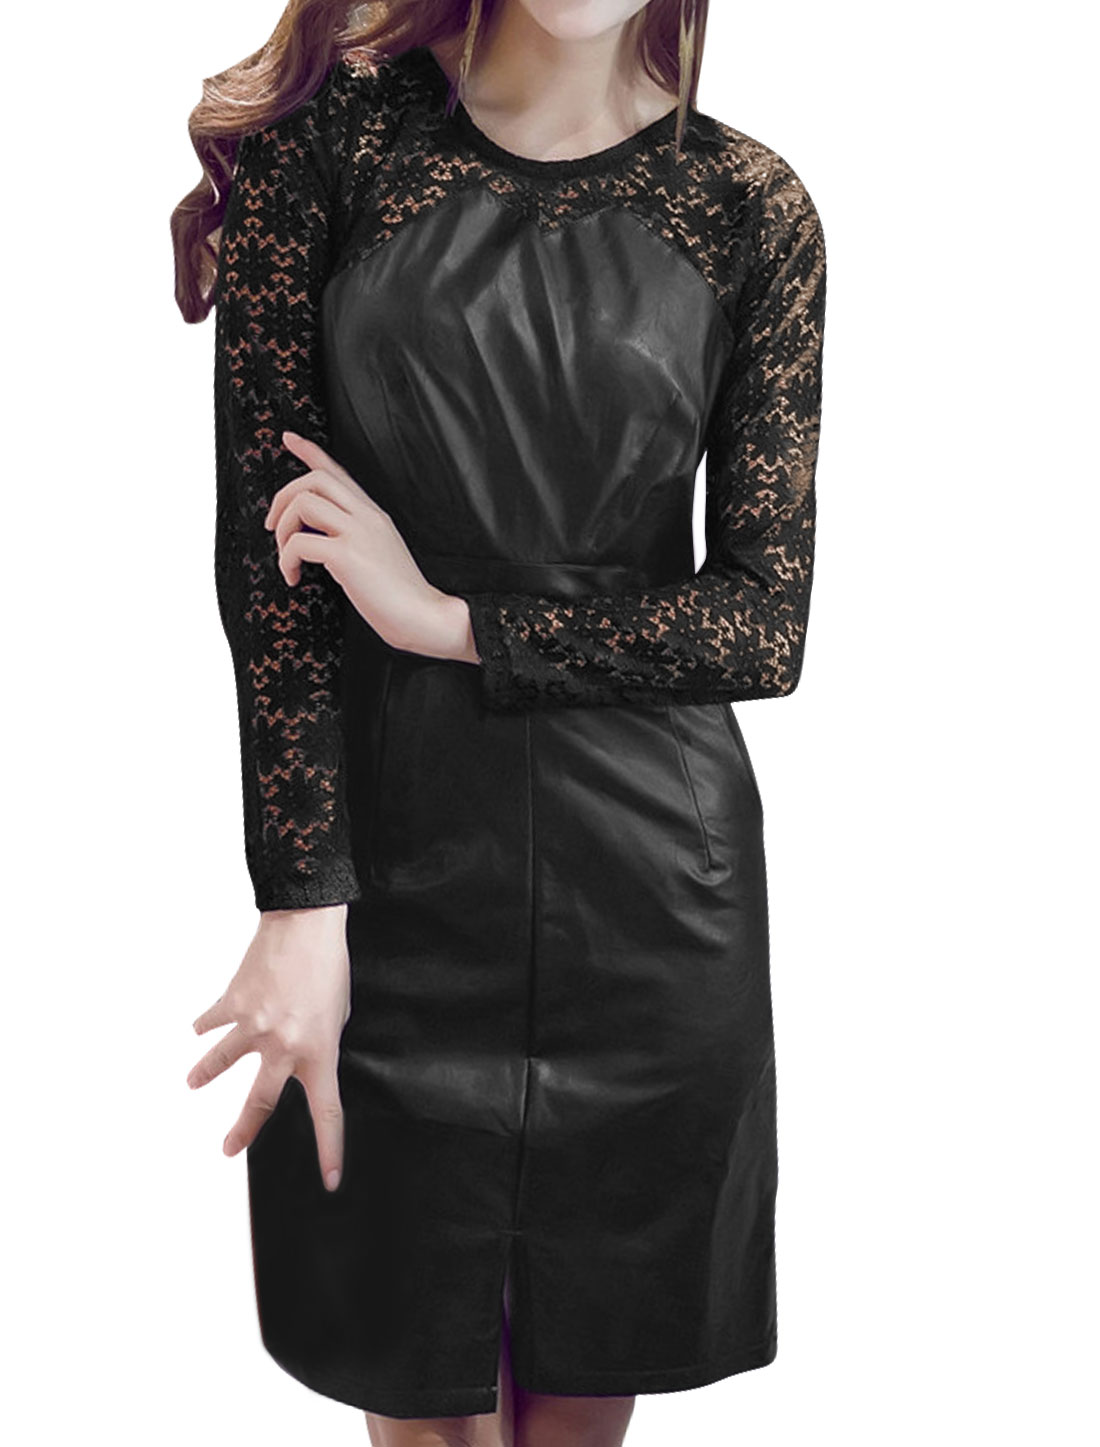 Lady Lace Panel Split PU Sheath Dress Black S